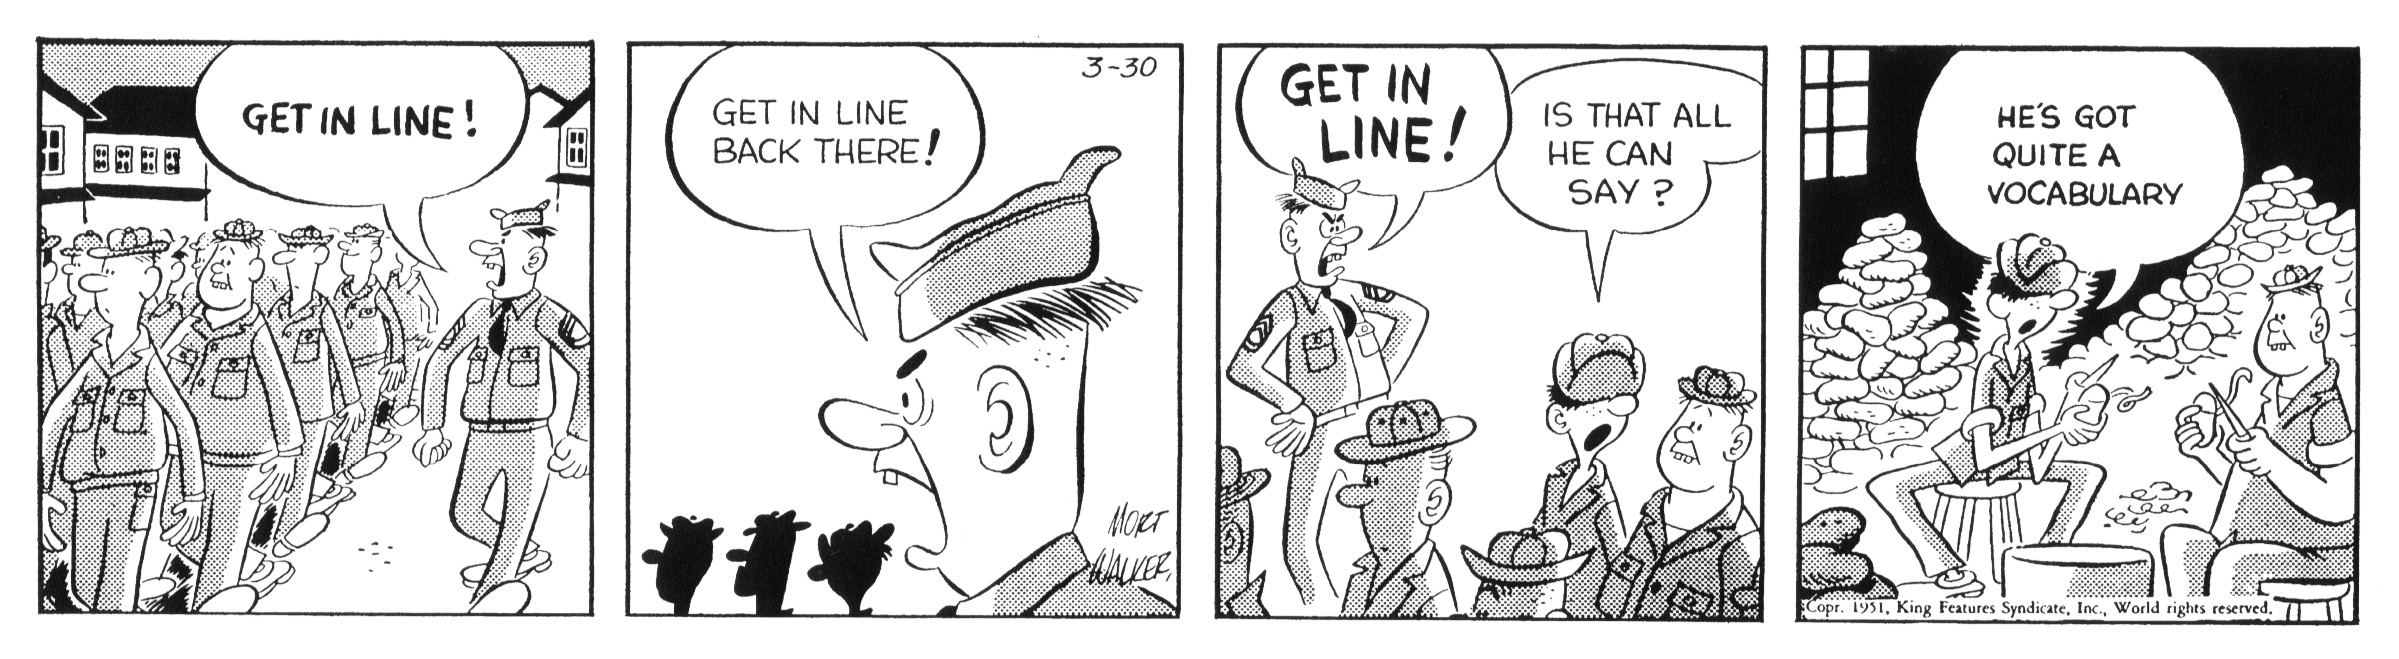 Beetle Bailey daily strip, March 30, 1951.